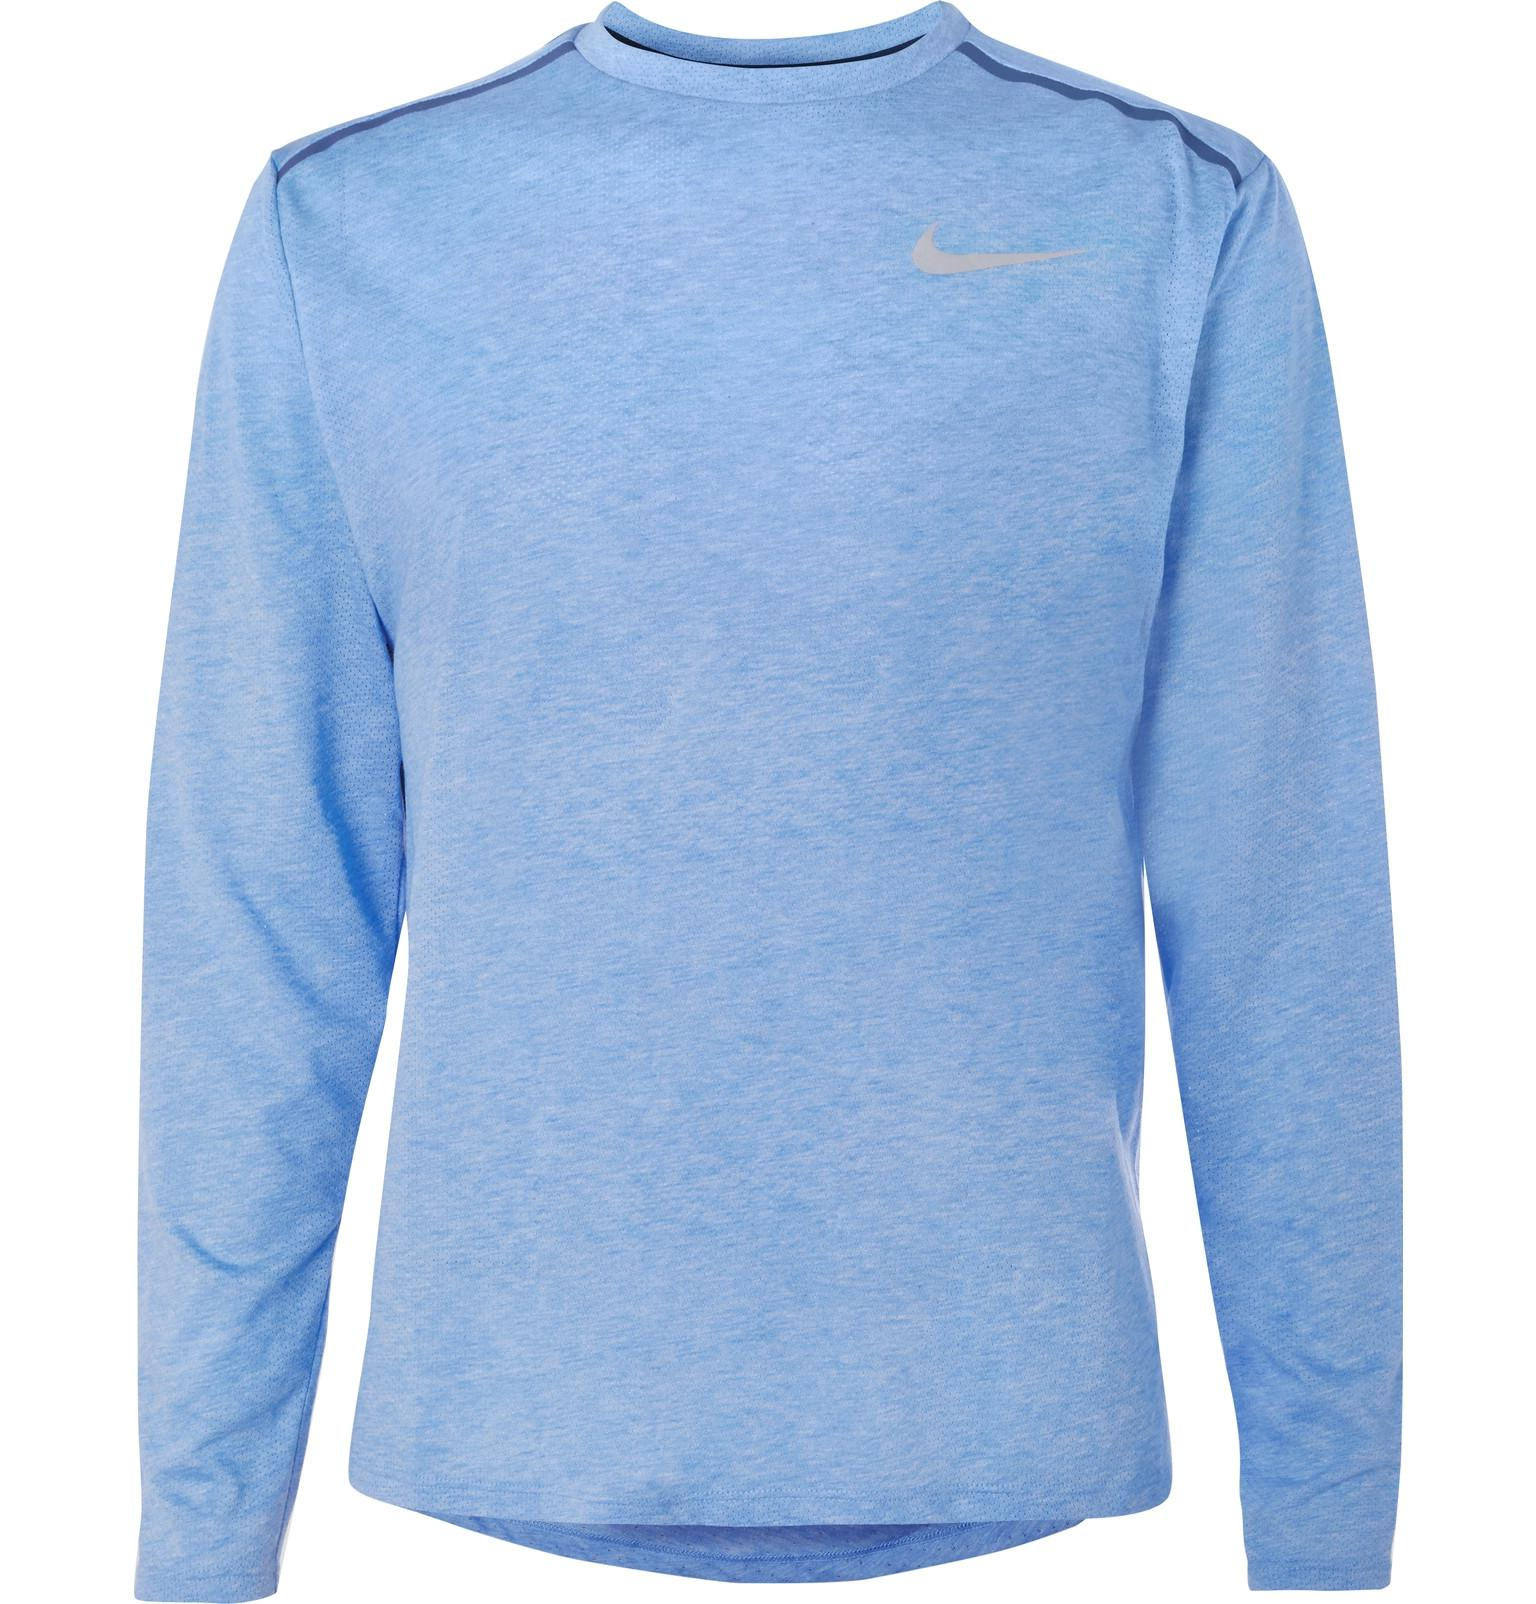 e64d8532df56 Nike Rise 365 Perforated Dri-fit T-shirt in Blue for Men - Lyst